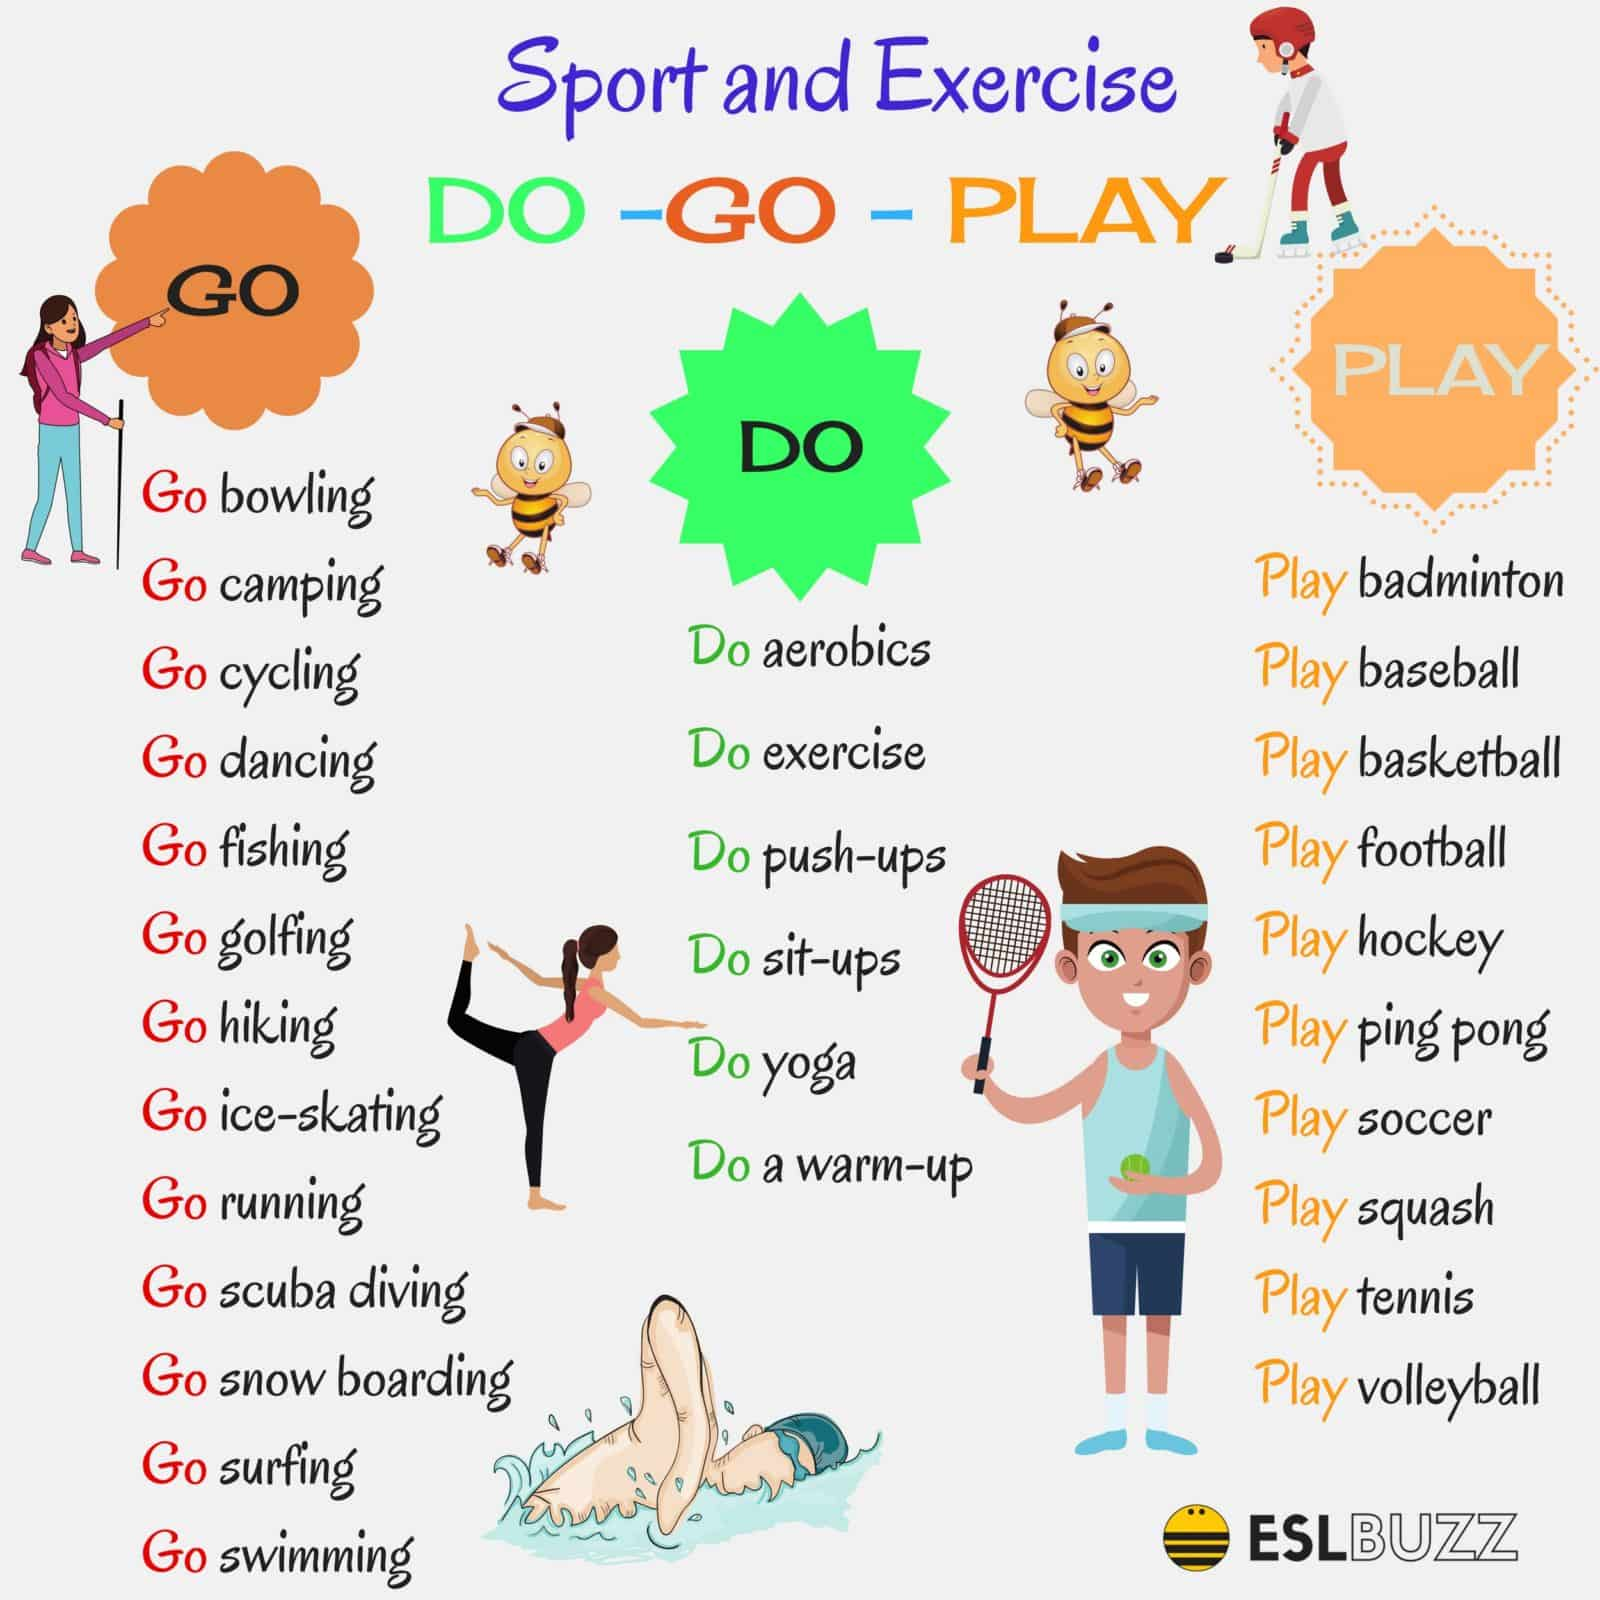 How to Use DO & GO and PLAY with Sports